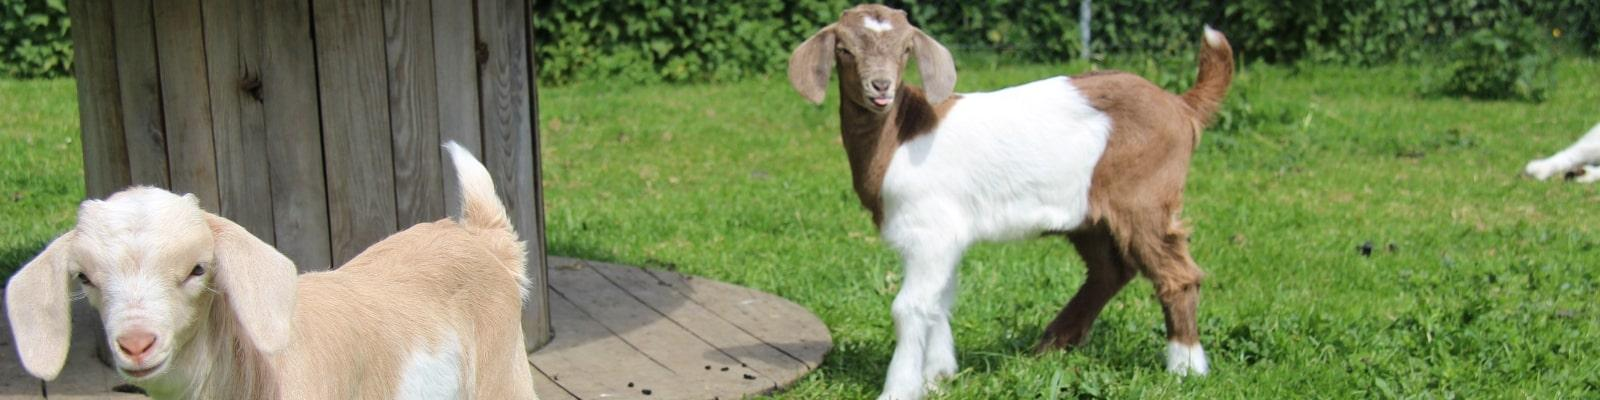 https://www.airfield.ie/wp-content/uploads/2019/02/Baby-Goats-at-Airfield-Estate-min.jpg